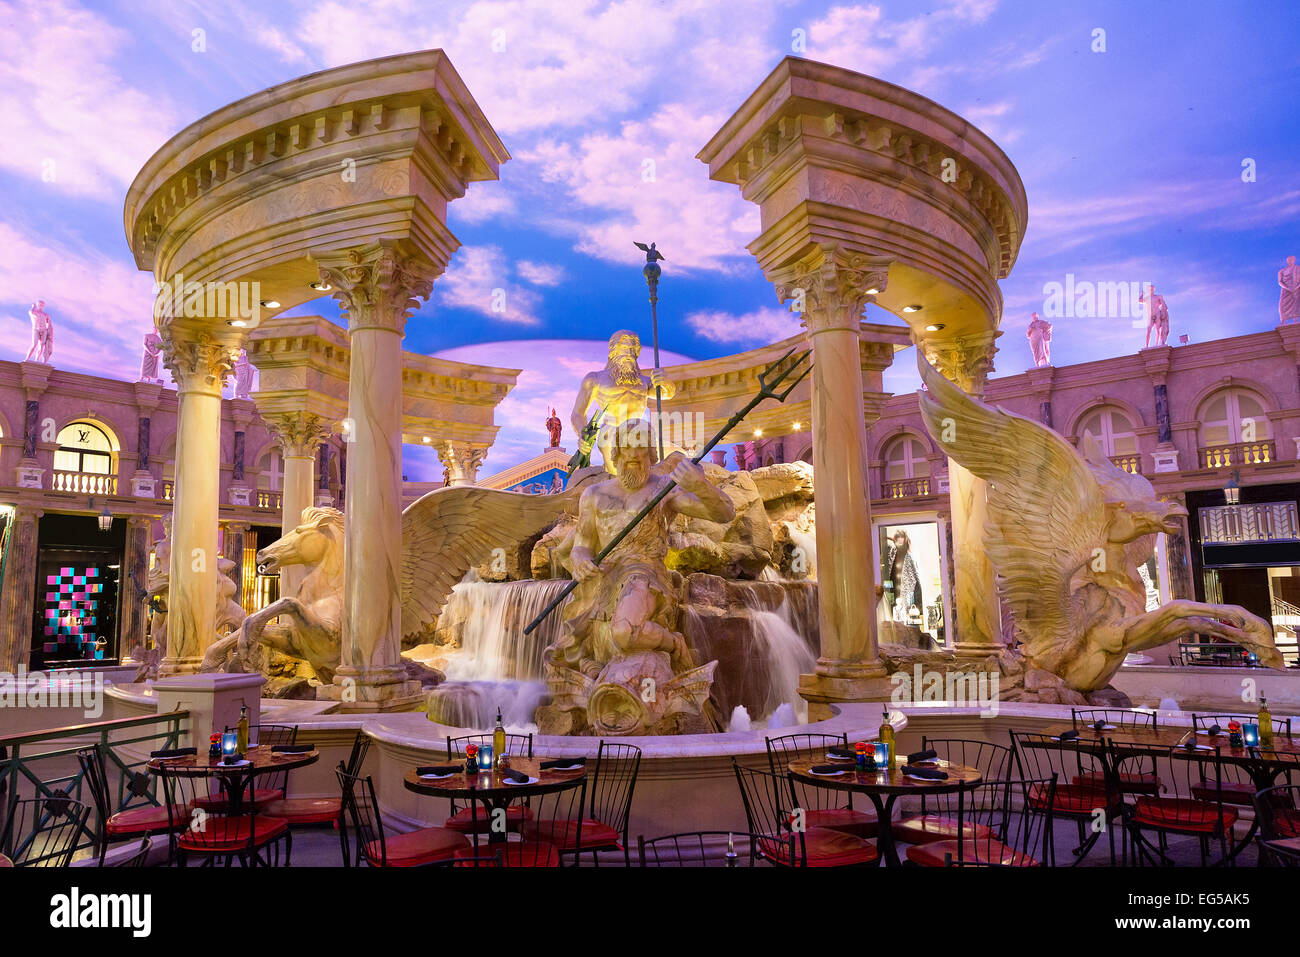 Fountain in Forum shops at Caesars Palace - Stock Image